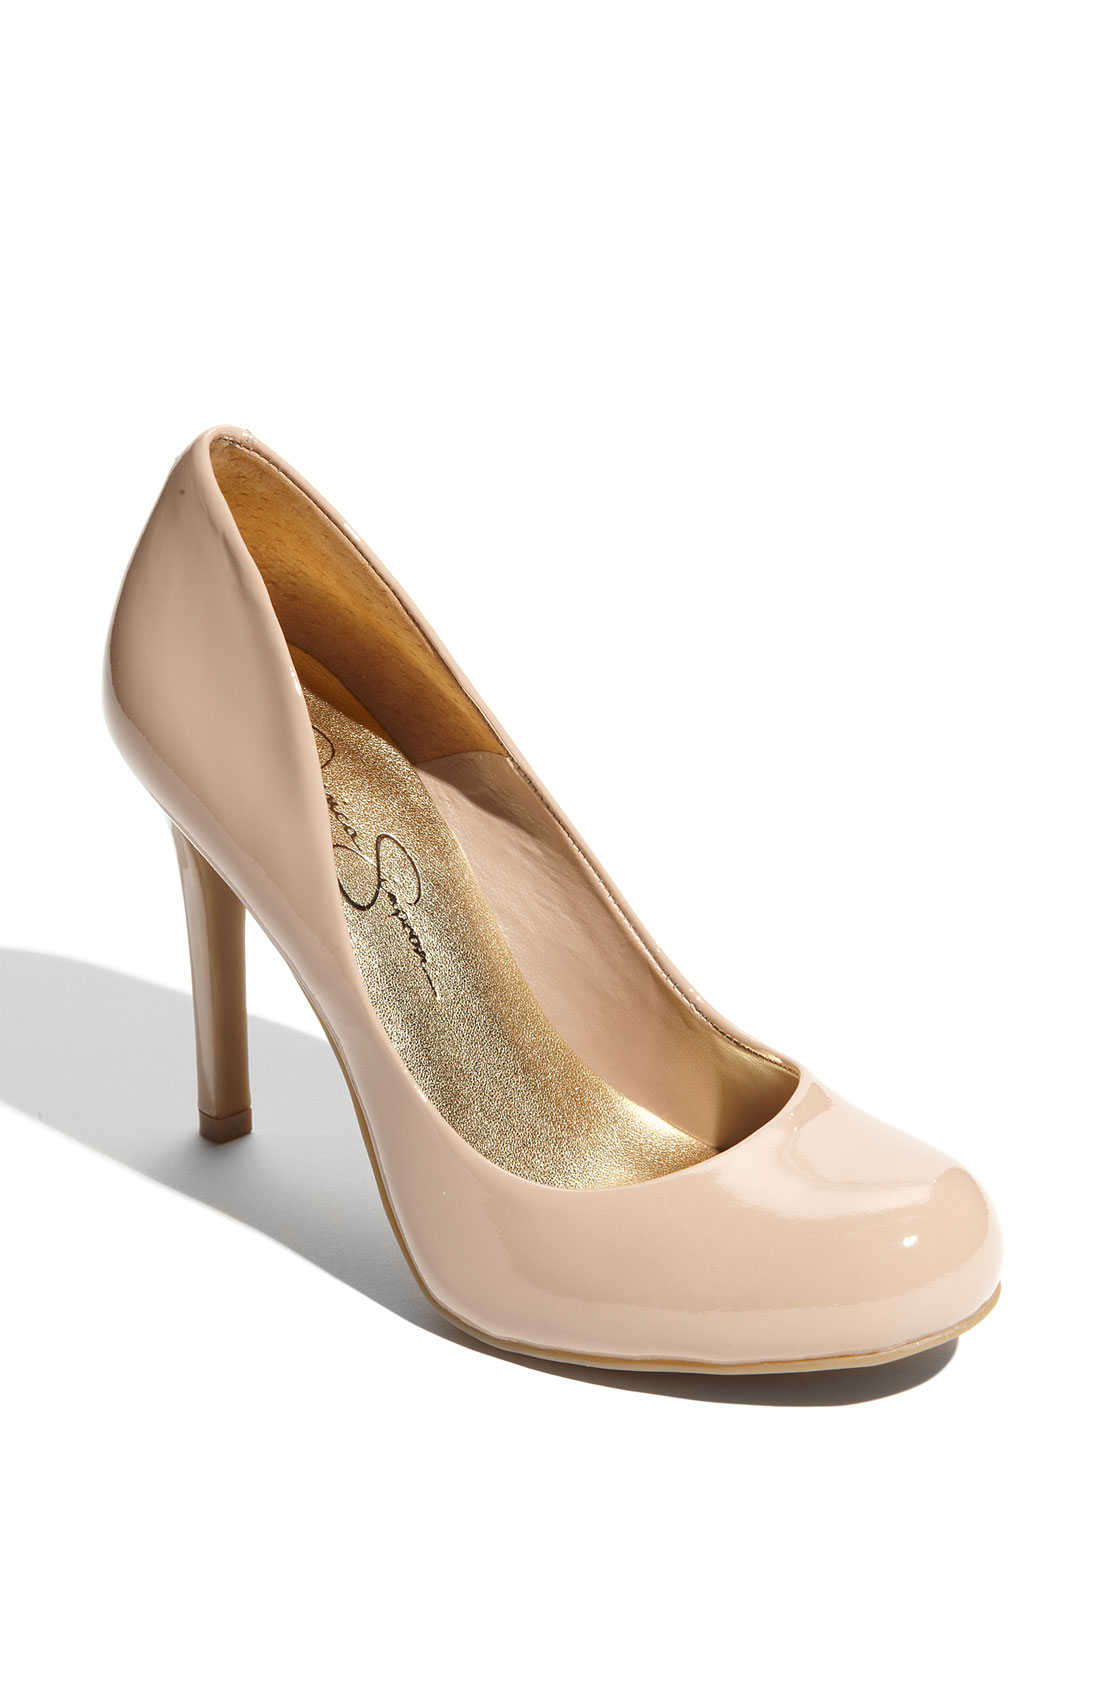 Nude patent shoes Nude Photos 5